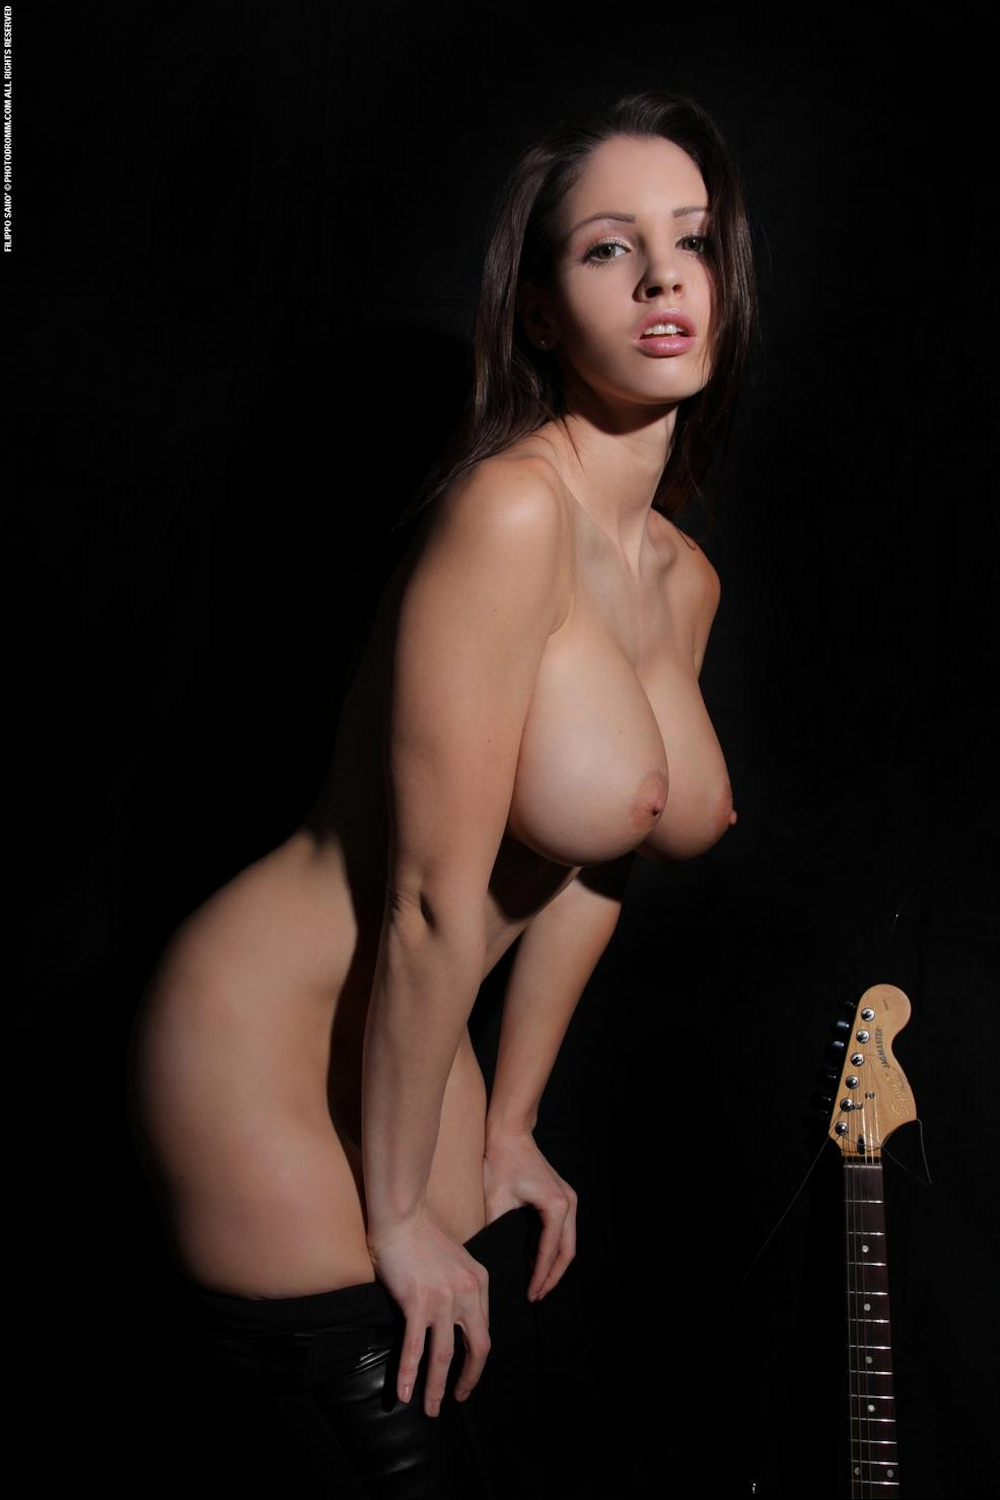 naked tits with guitar